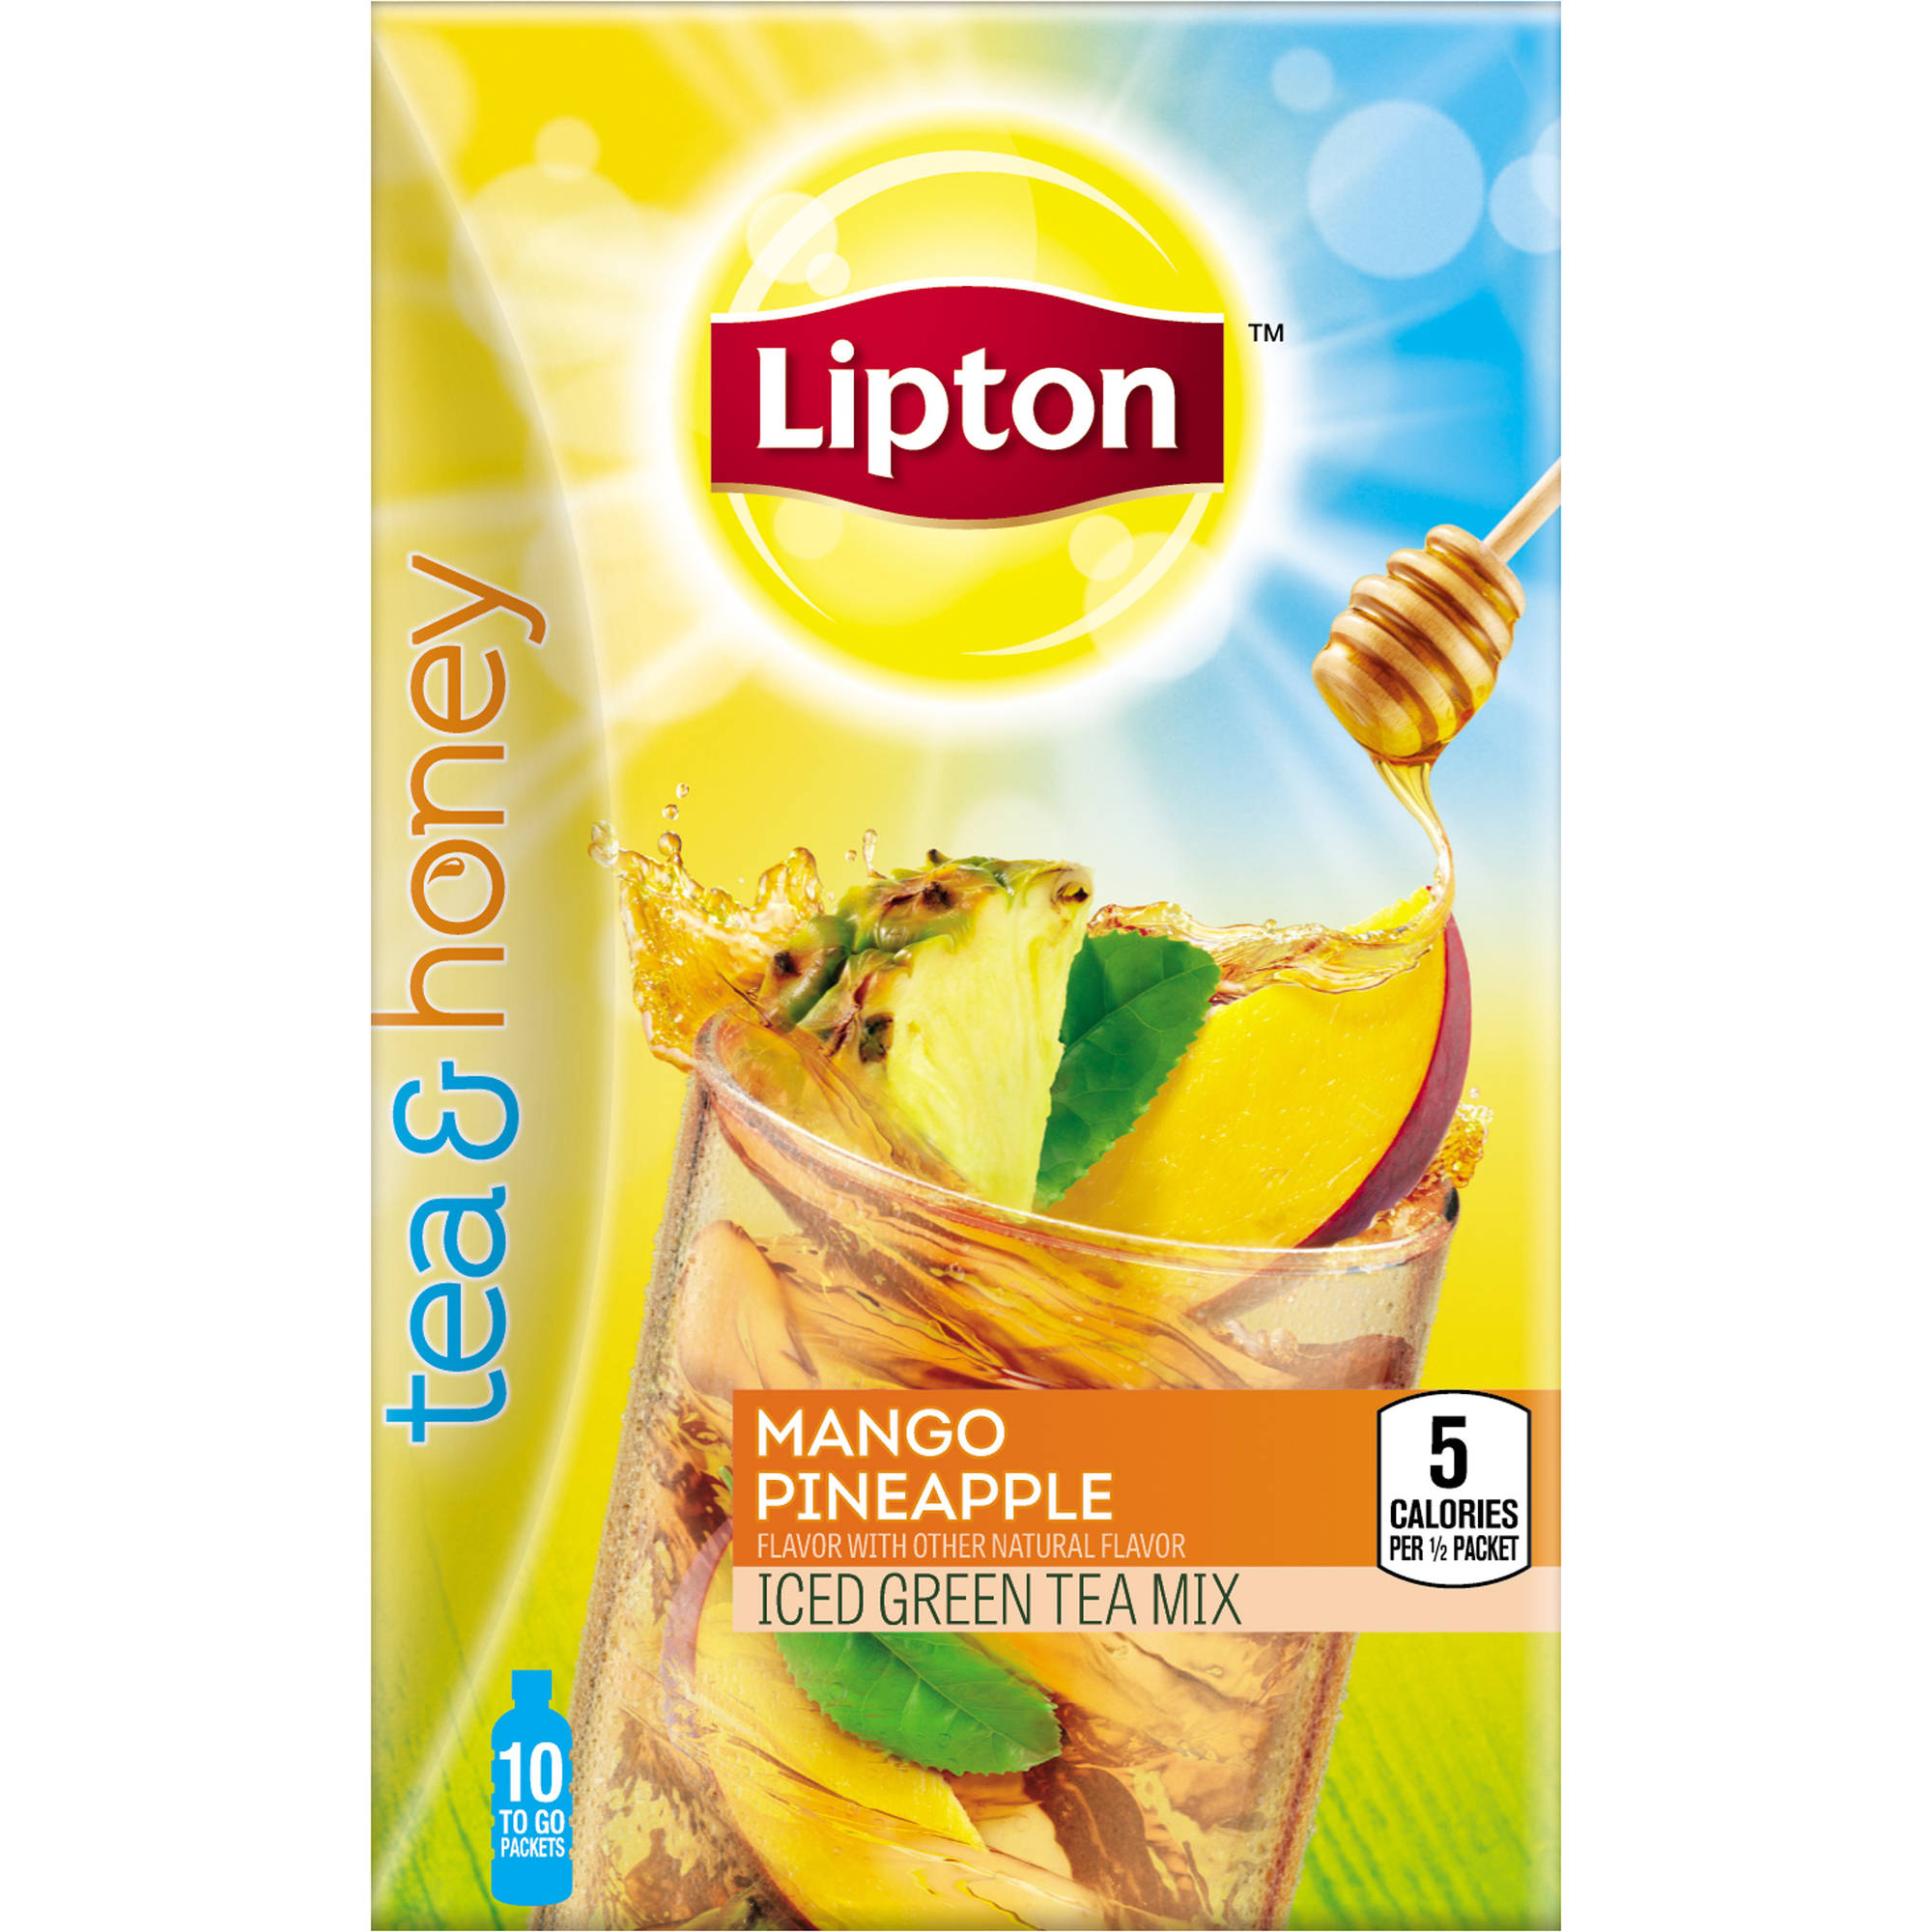 Lipton Tea and Honey Mango Pineapple Iced Green Tea To Go Packets, 10 ct